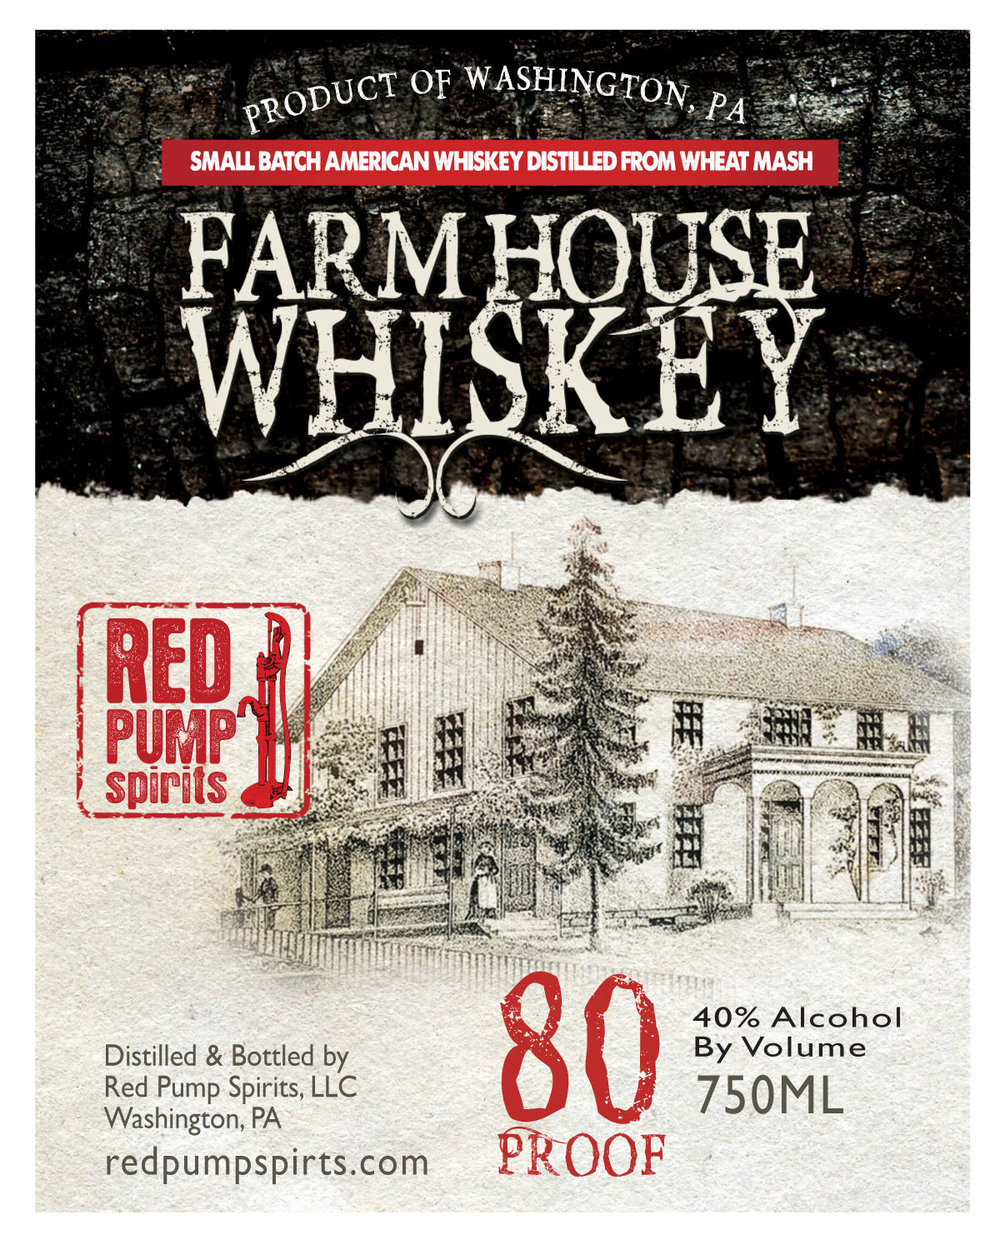 FARMHOUSE WHISKEY - Farmhouse Whiskey has a special place in our family's heart.  It is named after the home we were raised in off Route 40 in the coal town of Cokeburg, PA.  That's why we put the picture of this 18th Century farmhouse on the label. It begins with locally sourced wheat grain from an organic farm in nearby Avella, PA.  To kick it up a notch we age the distilled spirit in barrels previously used to age our Rebellion Rye Whiskey.  So you get the mellow taste of a wheat whiskey with a touch of spice from the rye.  We think the commitment to values and hard work we learned in that Farmhouse shows up in this whiskey.We bottle it at 80 Proof / 40%ABV